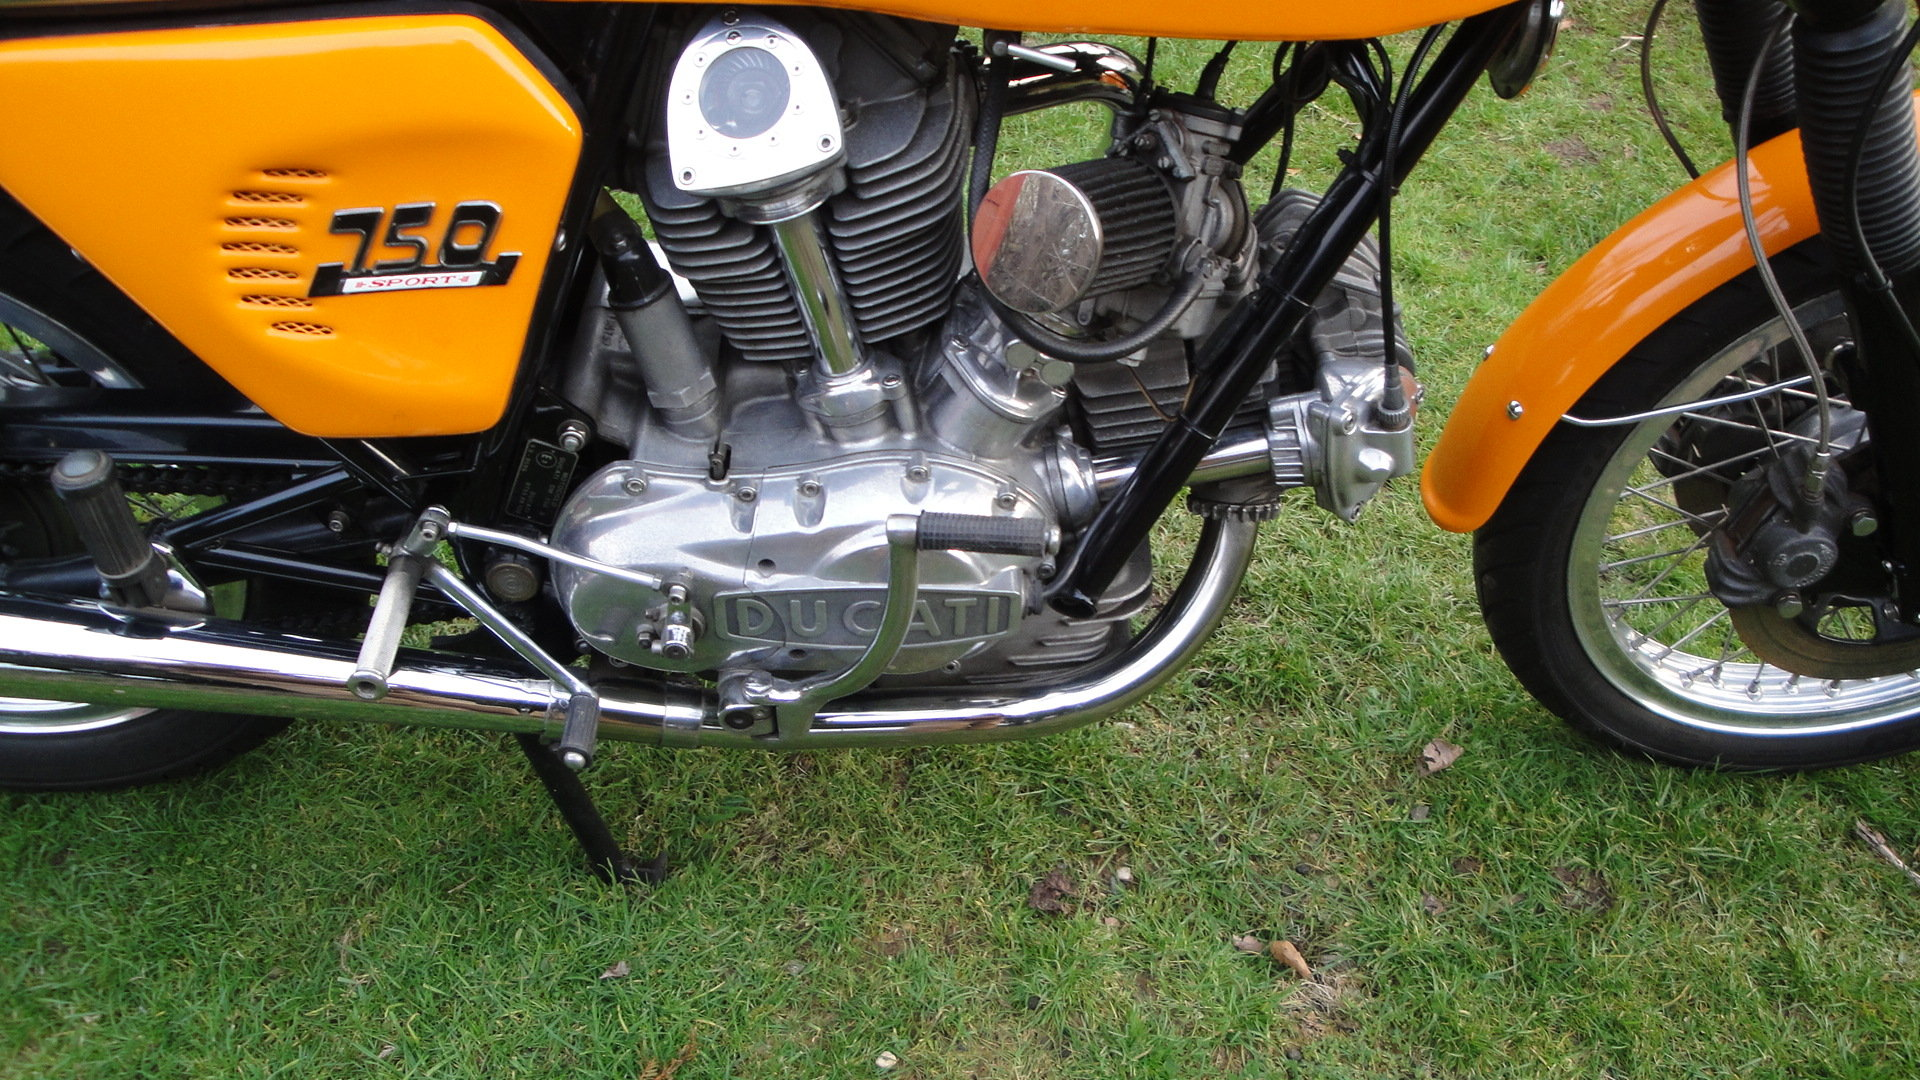 DUCATI 750 SPORT 1975 UK SUPPLIED. 1 PREV. OWNER. For Sale (picture 4 of 6)